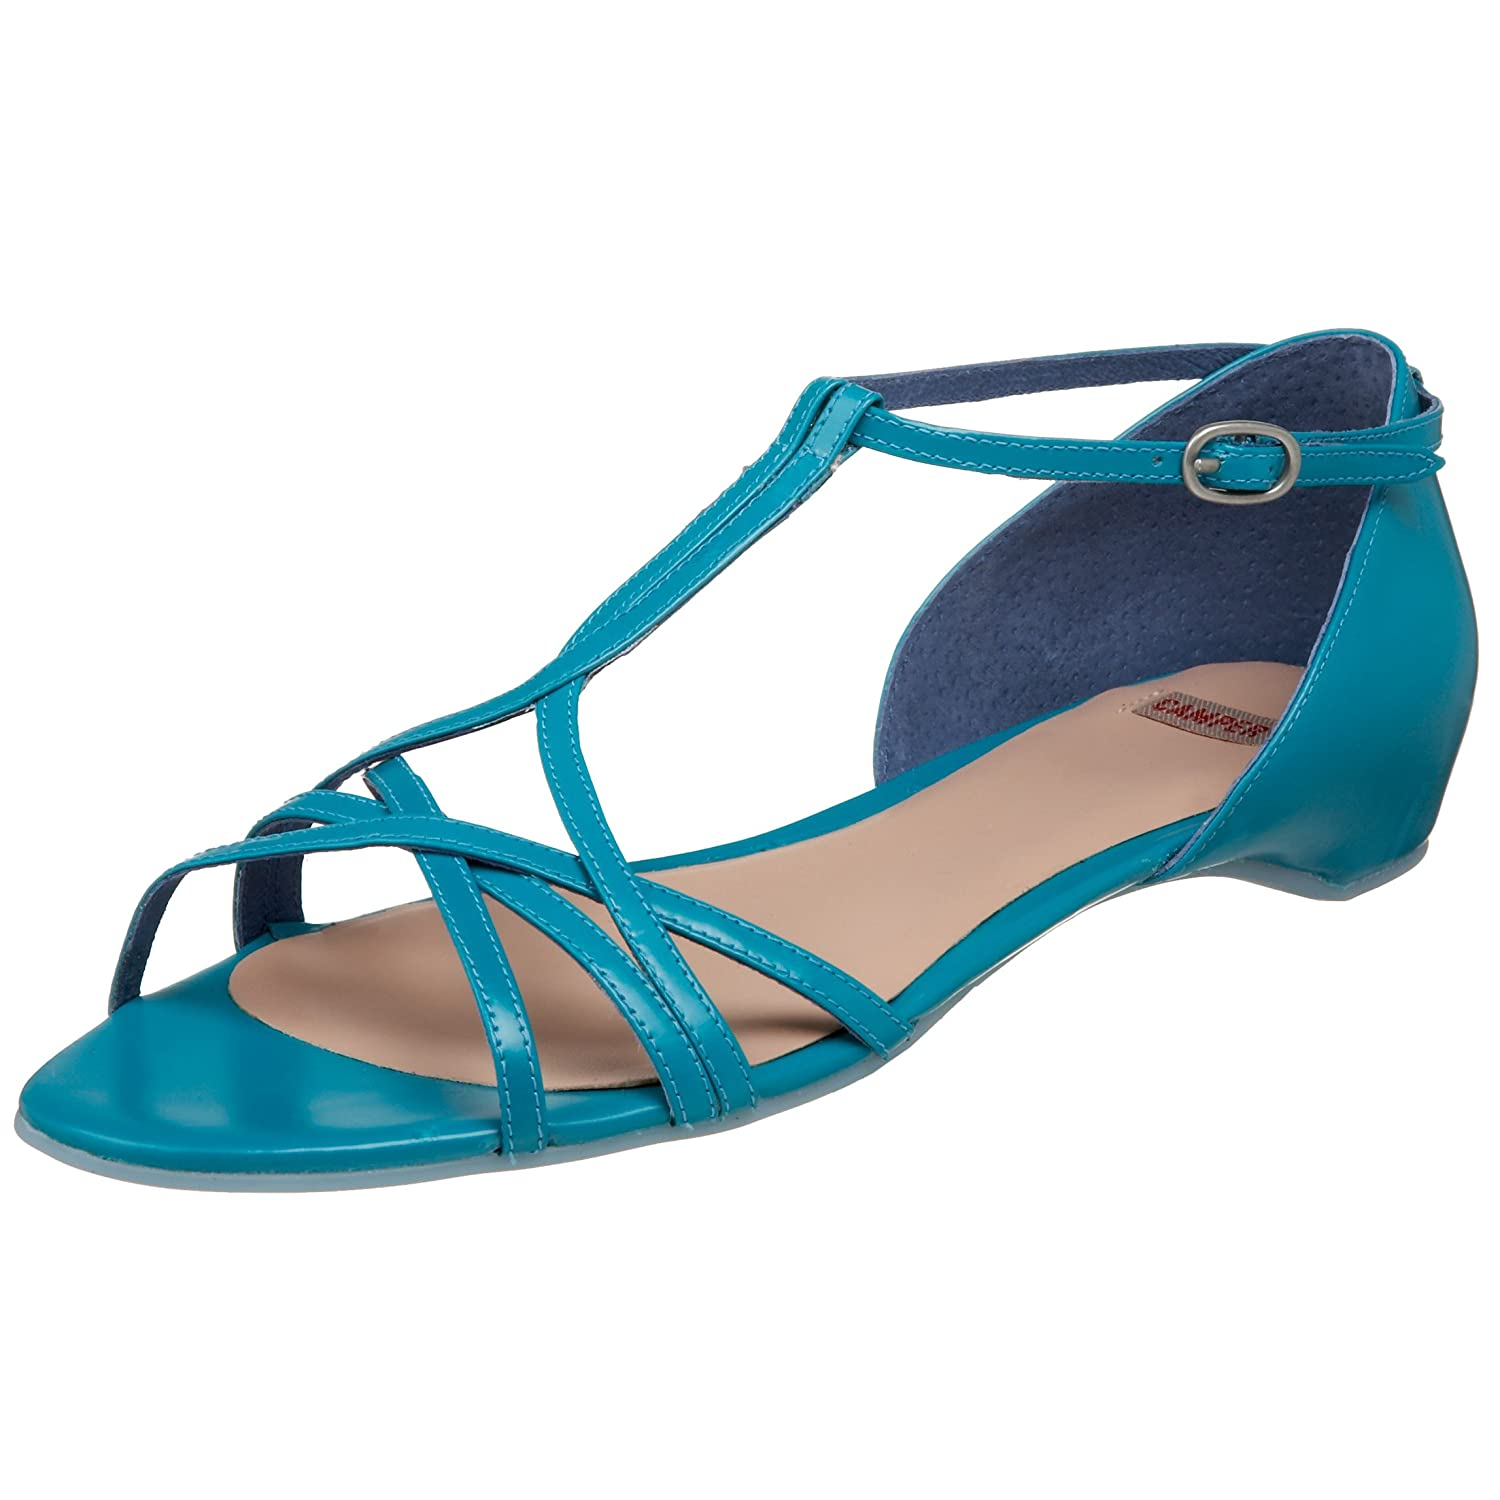 Camper 20918-006 Leia Sandal - Free Overnight Shipping & Return Shipping: Endless.com from endless.com